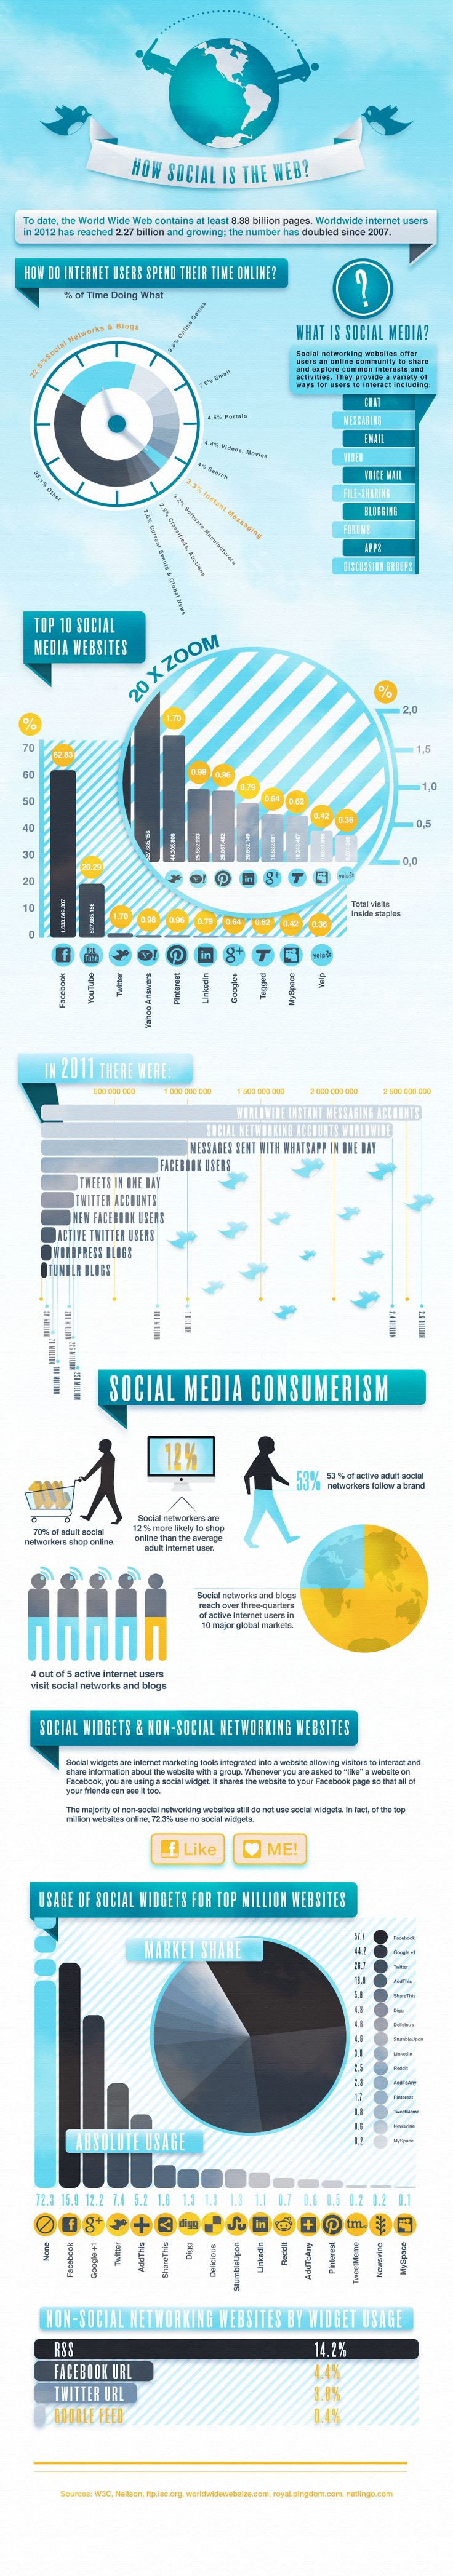 How Social is the Web?